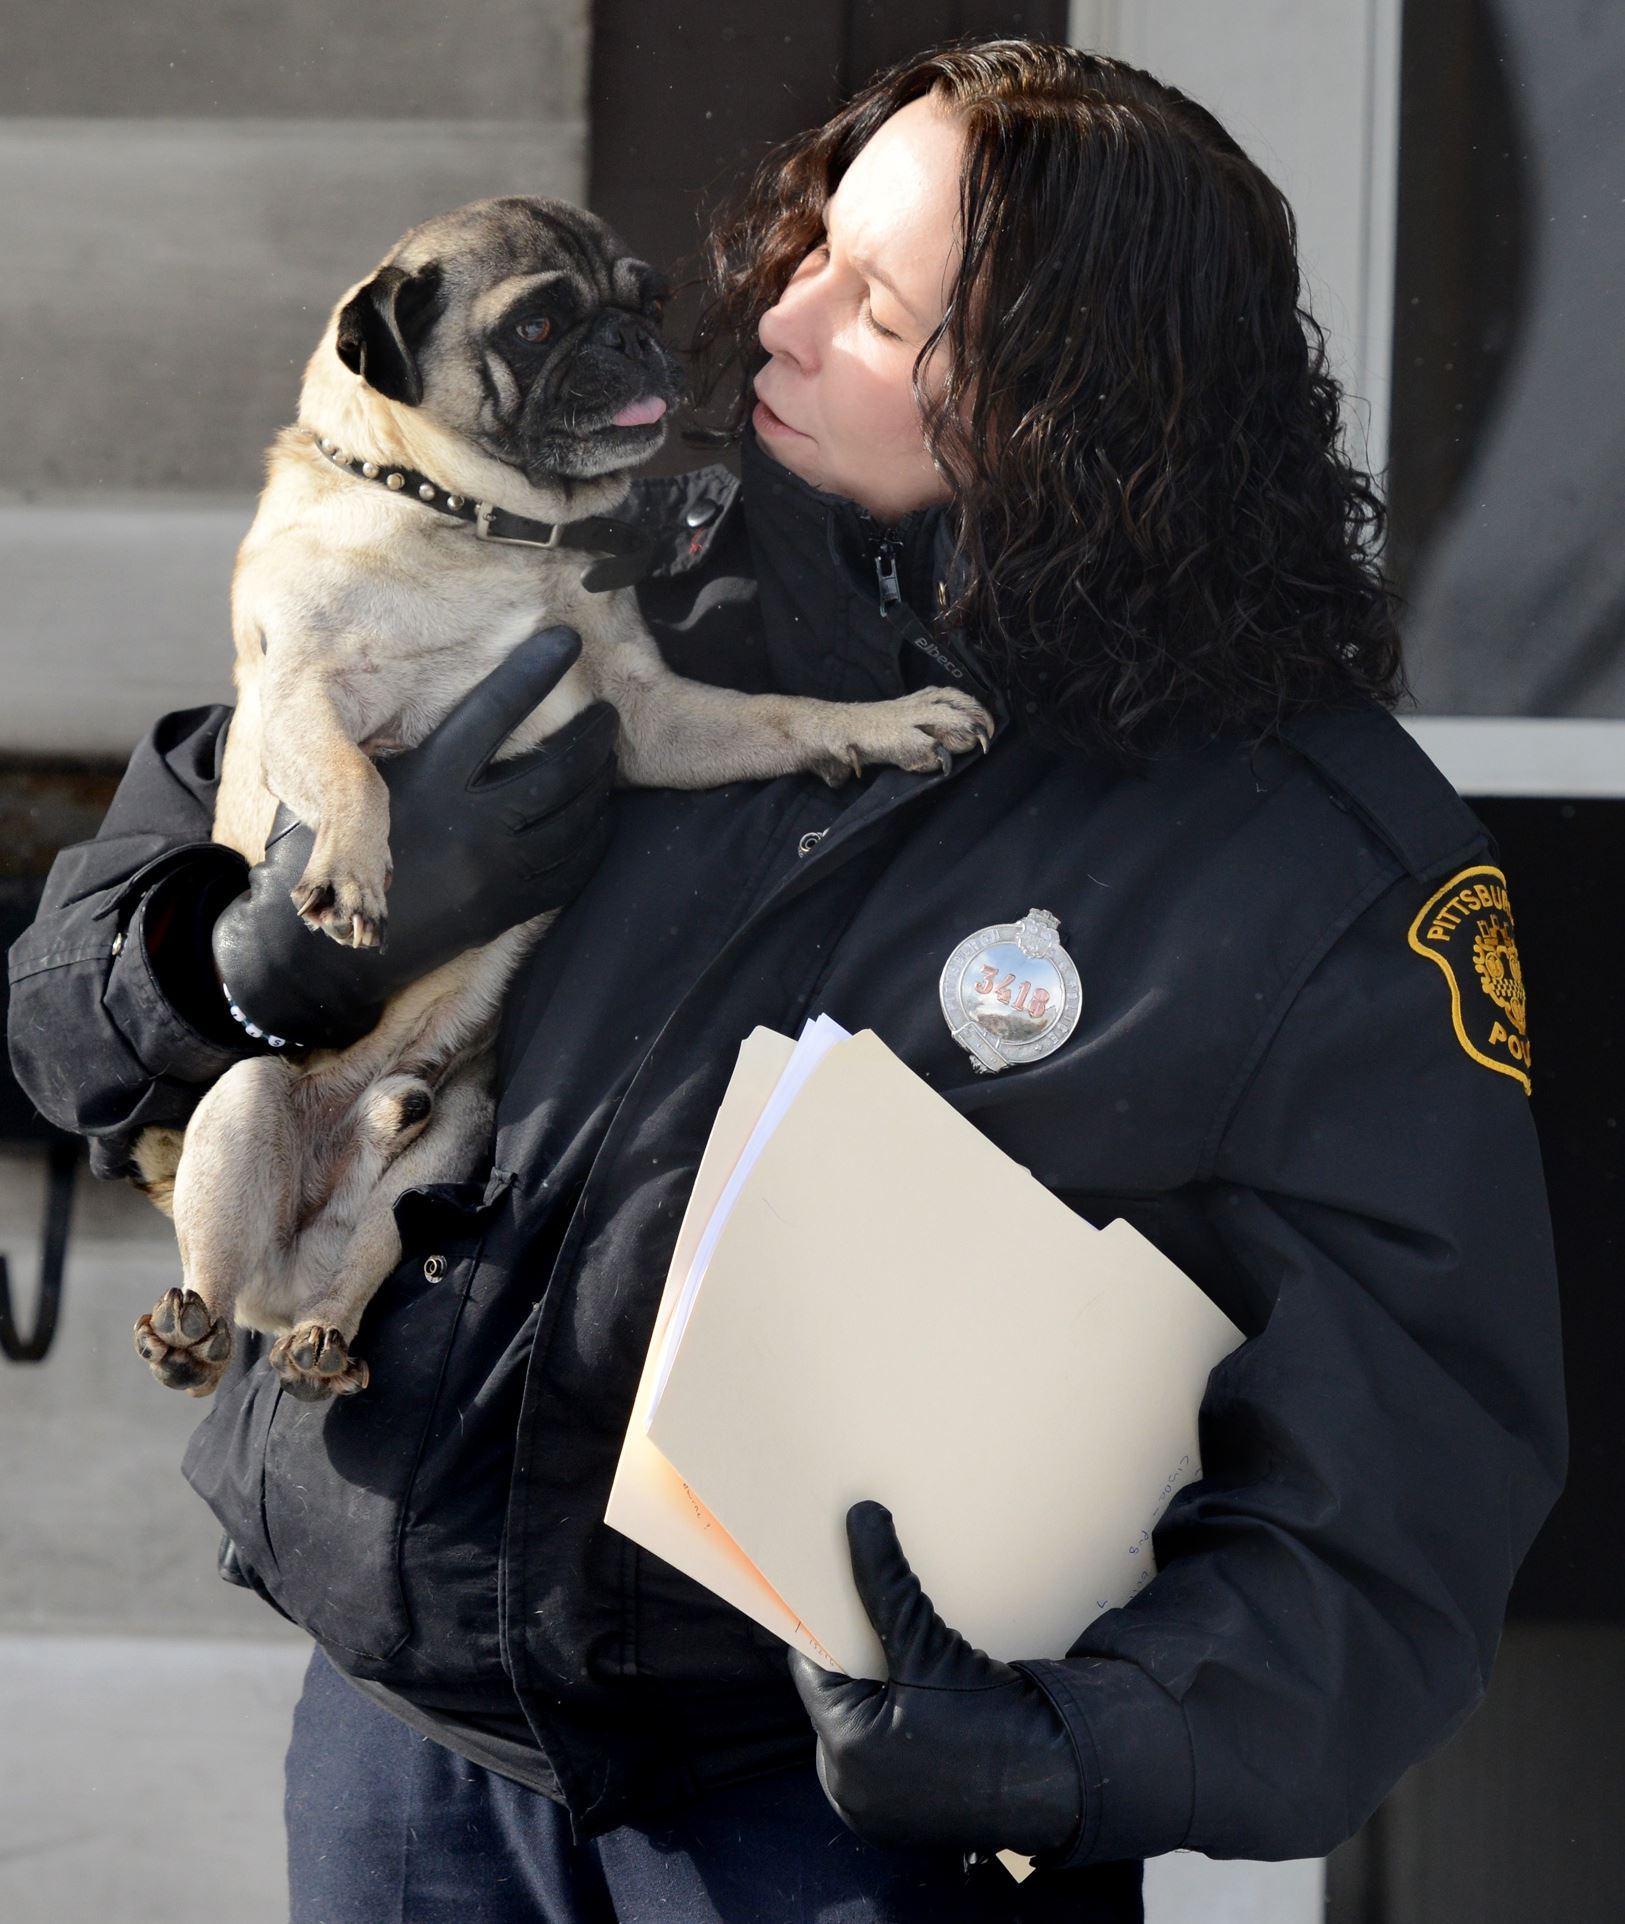 Police officer and dog Pittsburgh police officer Christine Luffey holds an 8-year-old pug in Allentown Tuesday after checking on him during cold weather.